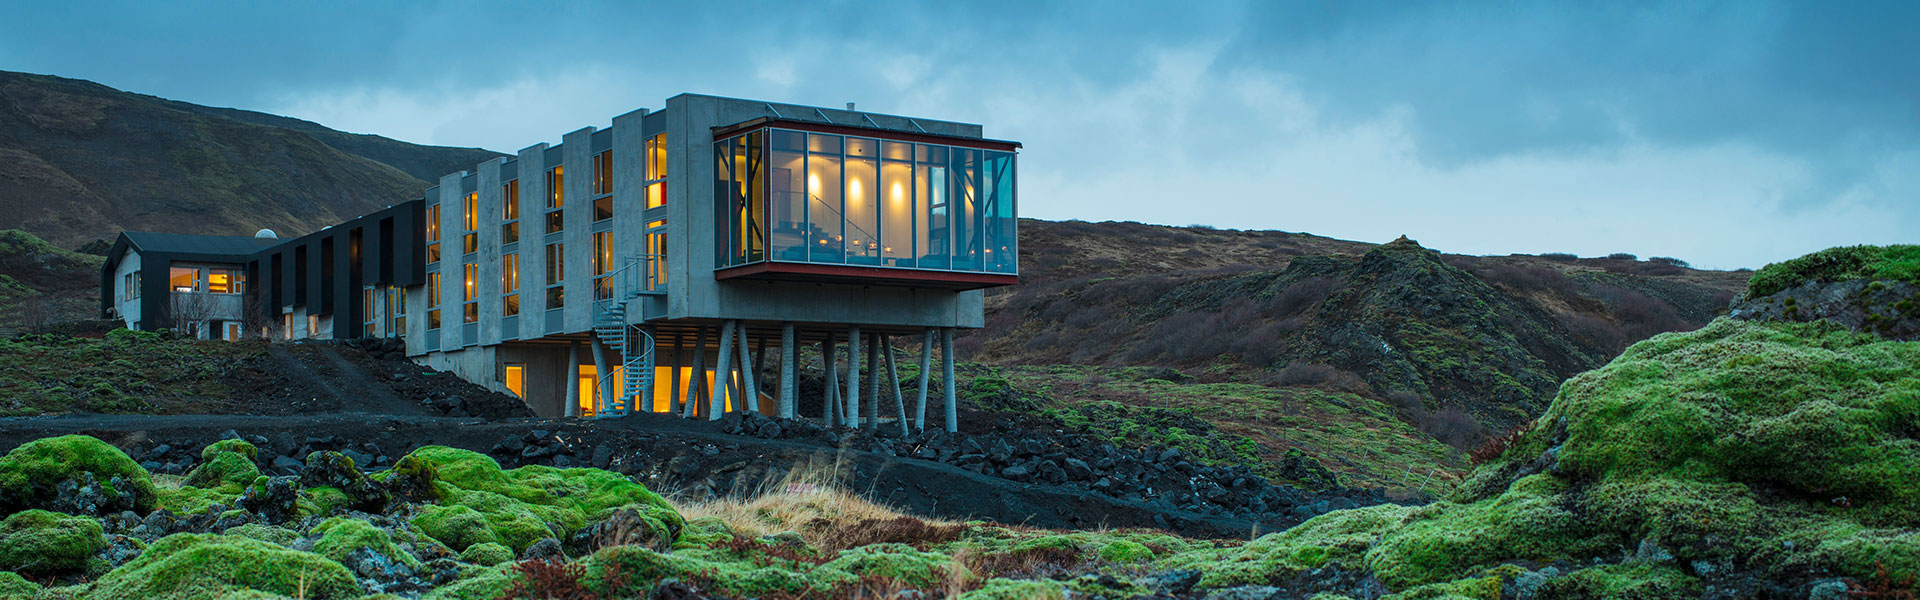 about the ion adventure hotel ion iceland. Black Bedroom Furniture Sets. Home Design Ideas